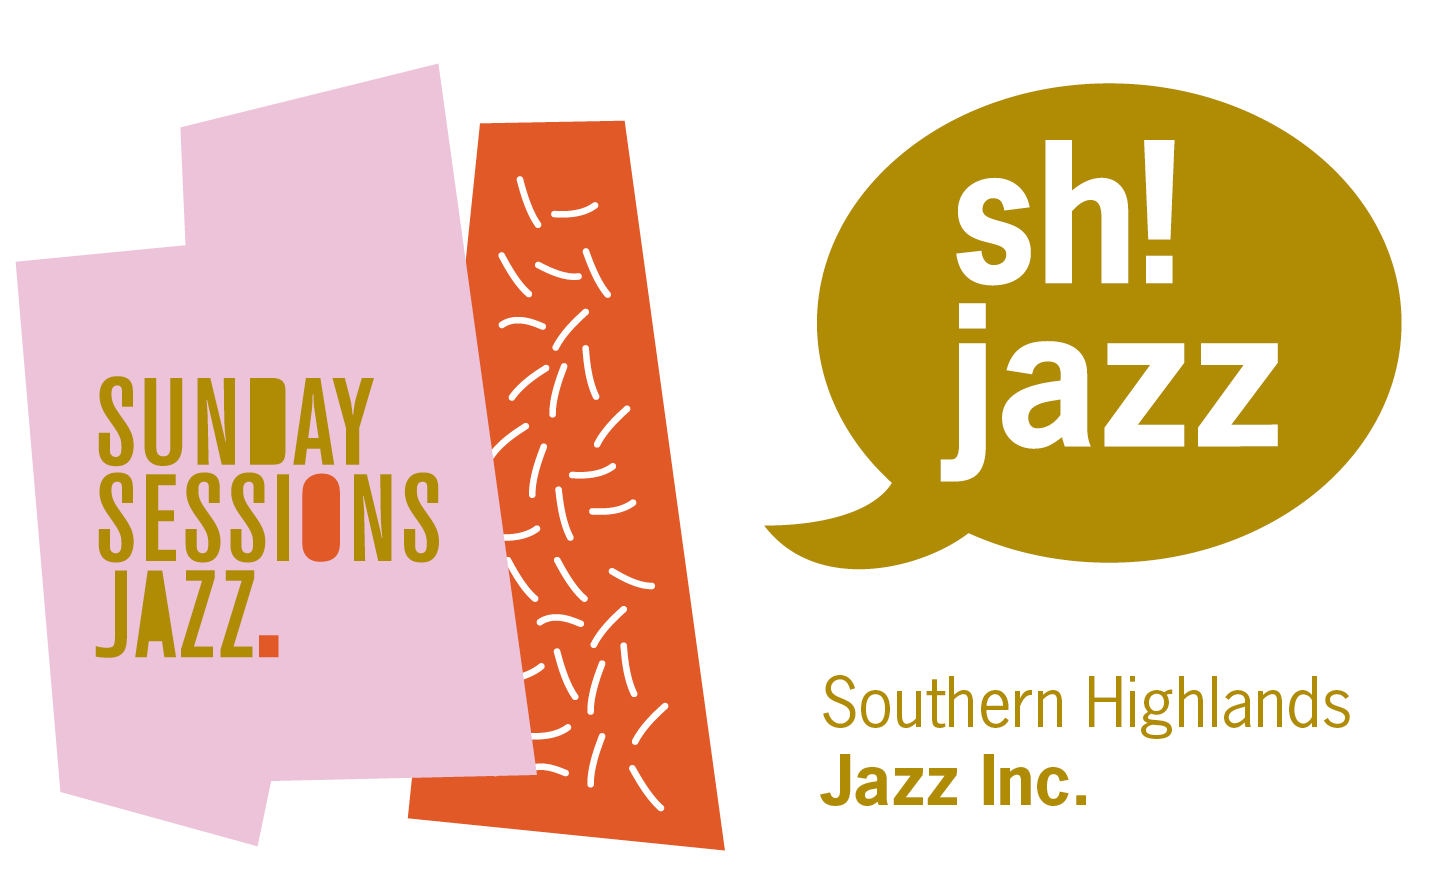 About - Find out more about the different projects such as the Sunday Sessions Jazz that we have initiated from concept to live performance and what we hope to achieve in the future like the Southern Highlands Jazz Festival.